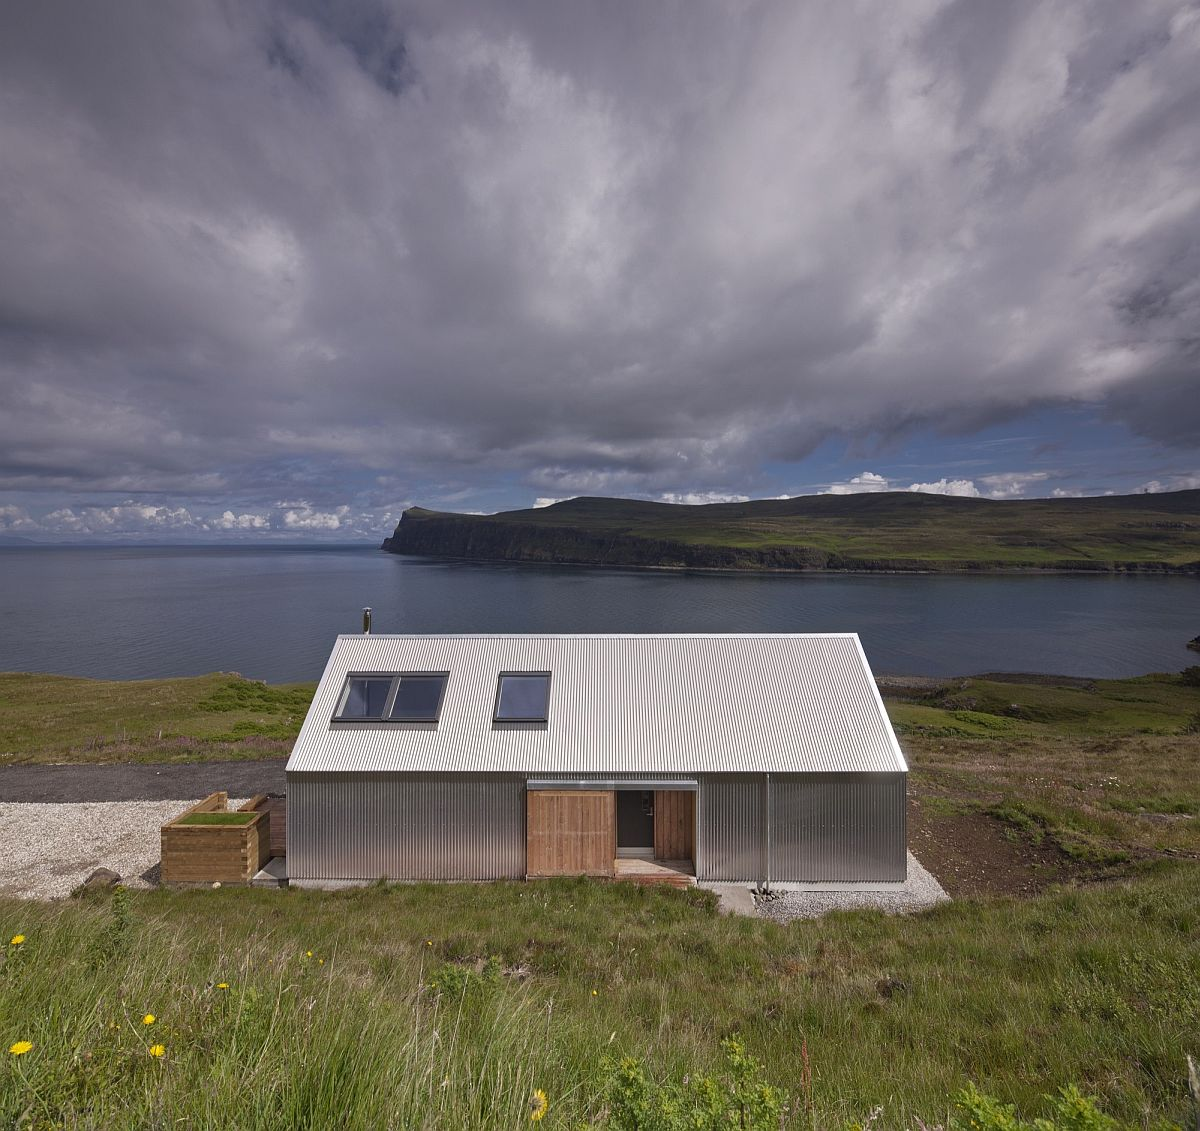 Tinhouse on the Isle of Skye overlooks a lovely natural landscape Serene Residence on Isle of Skye Blends Rural and Modern Aesthetics